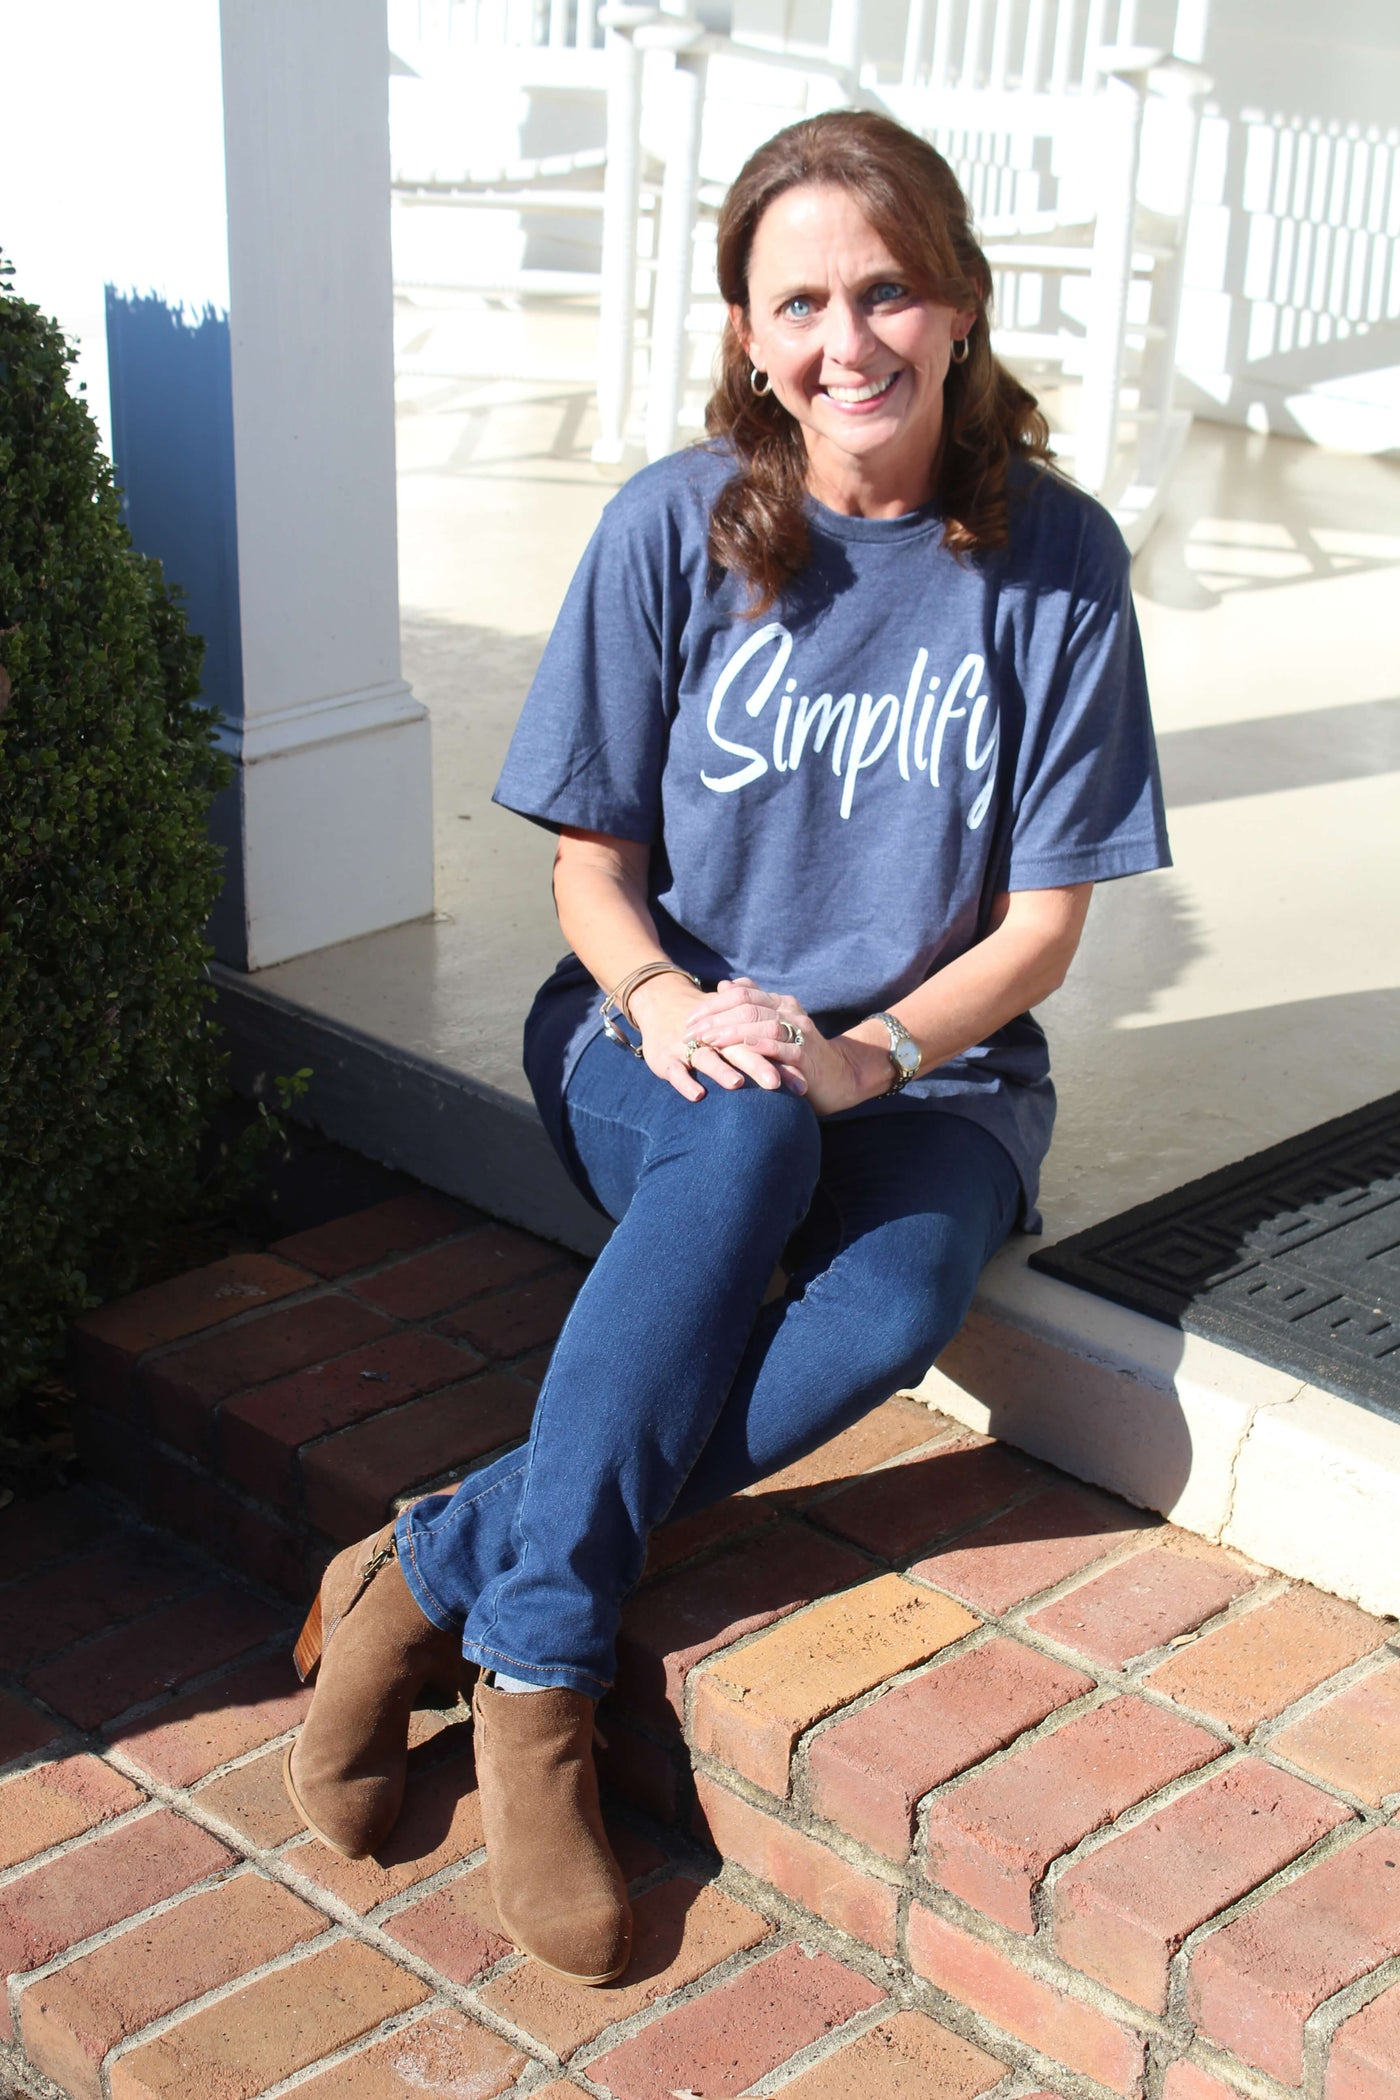 Celebrating simplicity: how the tee came to be